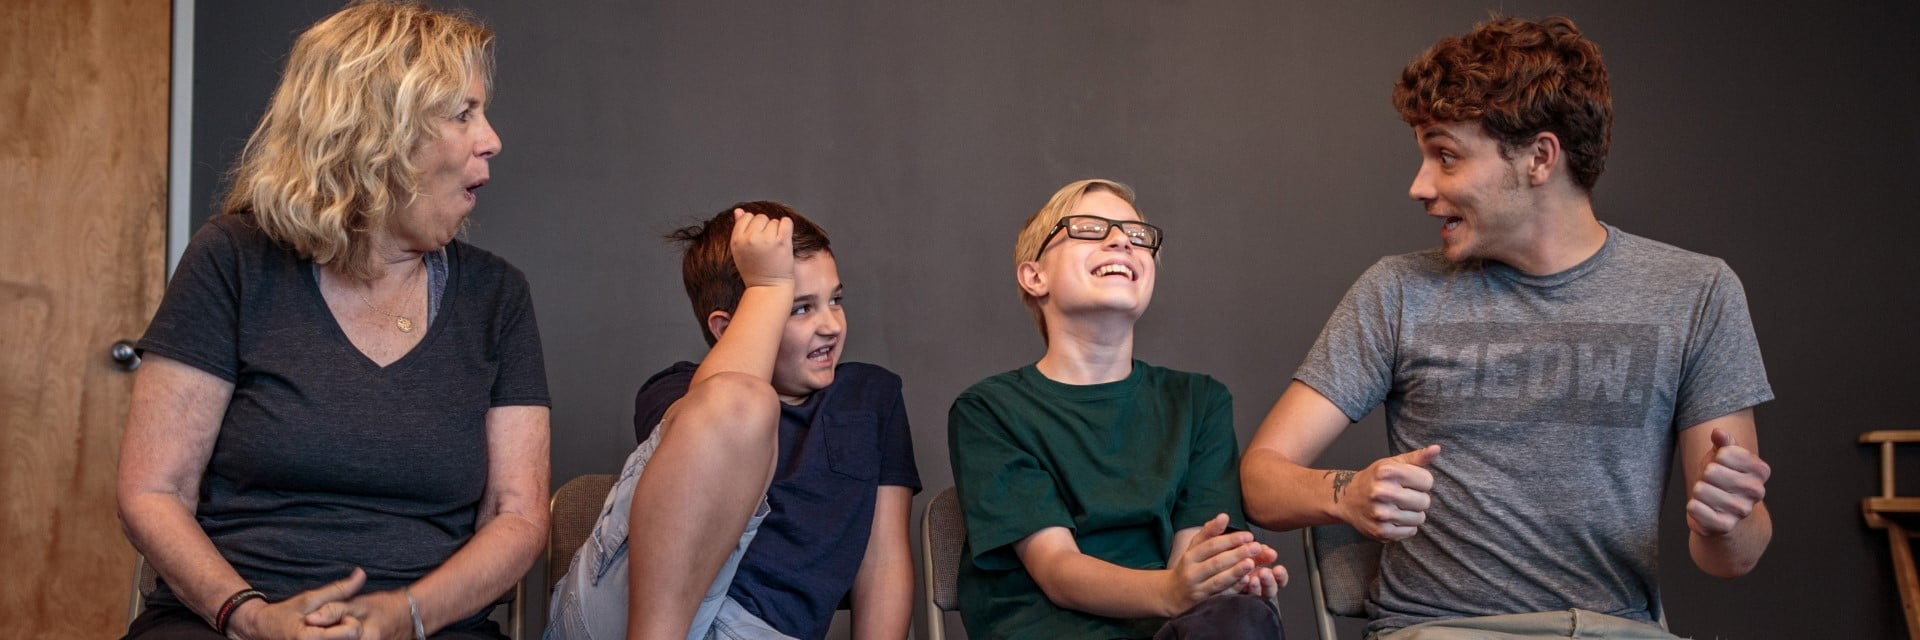 kids acting classes los angeles, acting classes for kids, kids acting classes near me